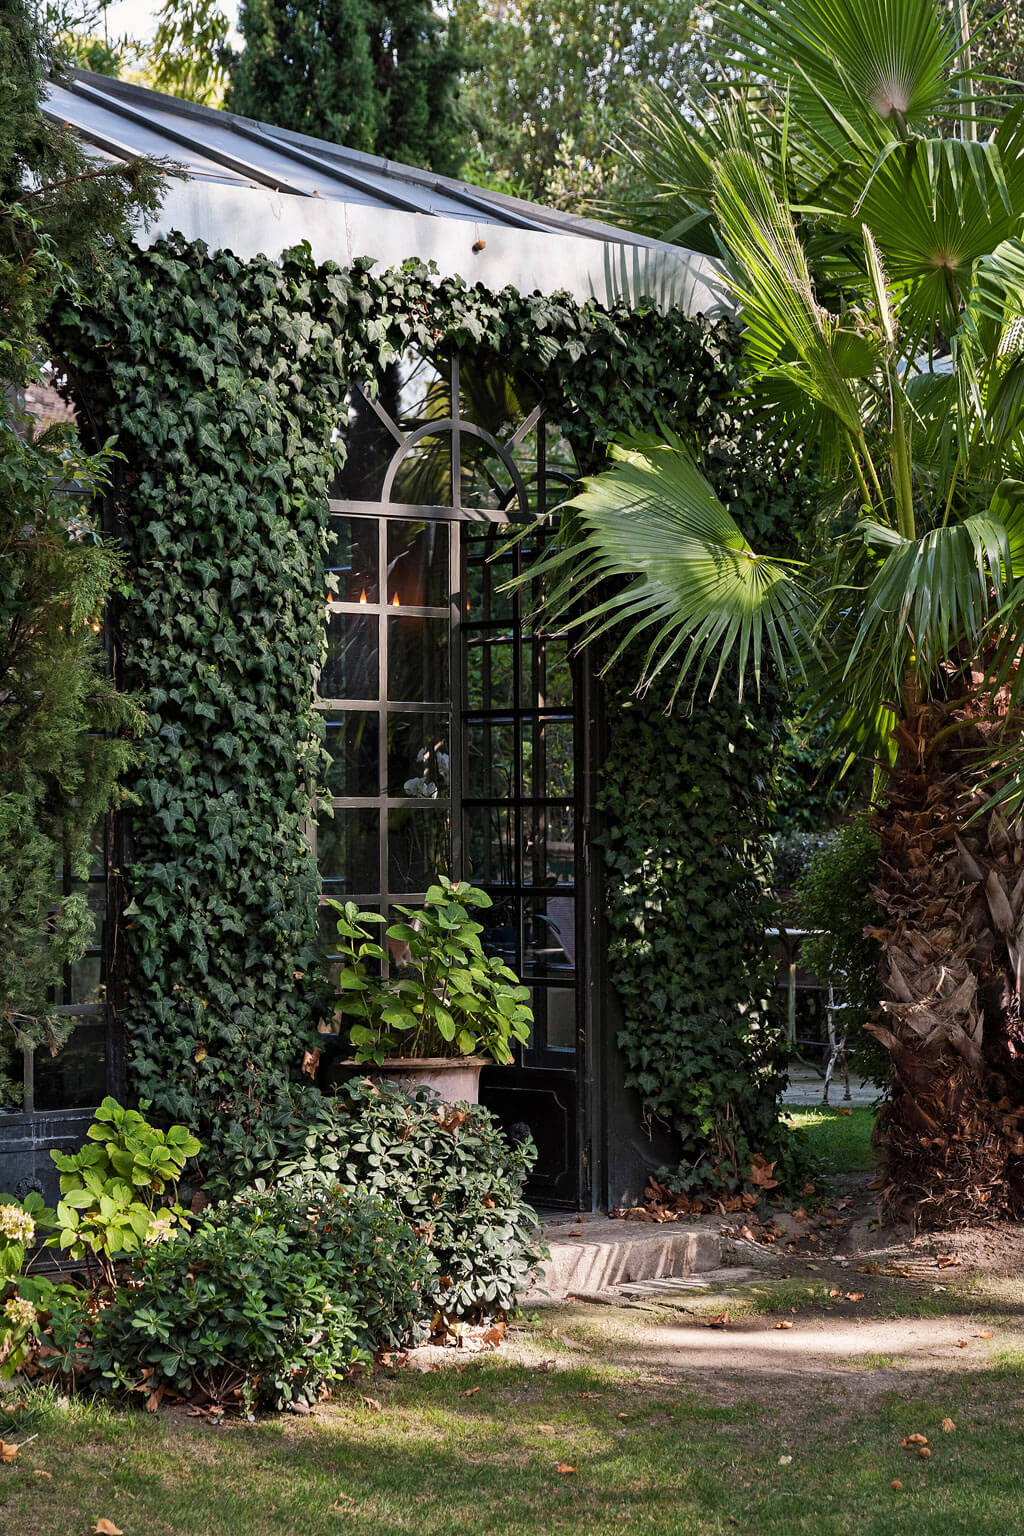 Lush gardens in Avignon. Come see a Breathtaking French Château Tour in Provence With Photo Gallery of Historical Architecture, Dramatic Eclectic Interiors & Oddities!